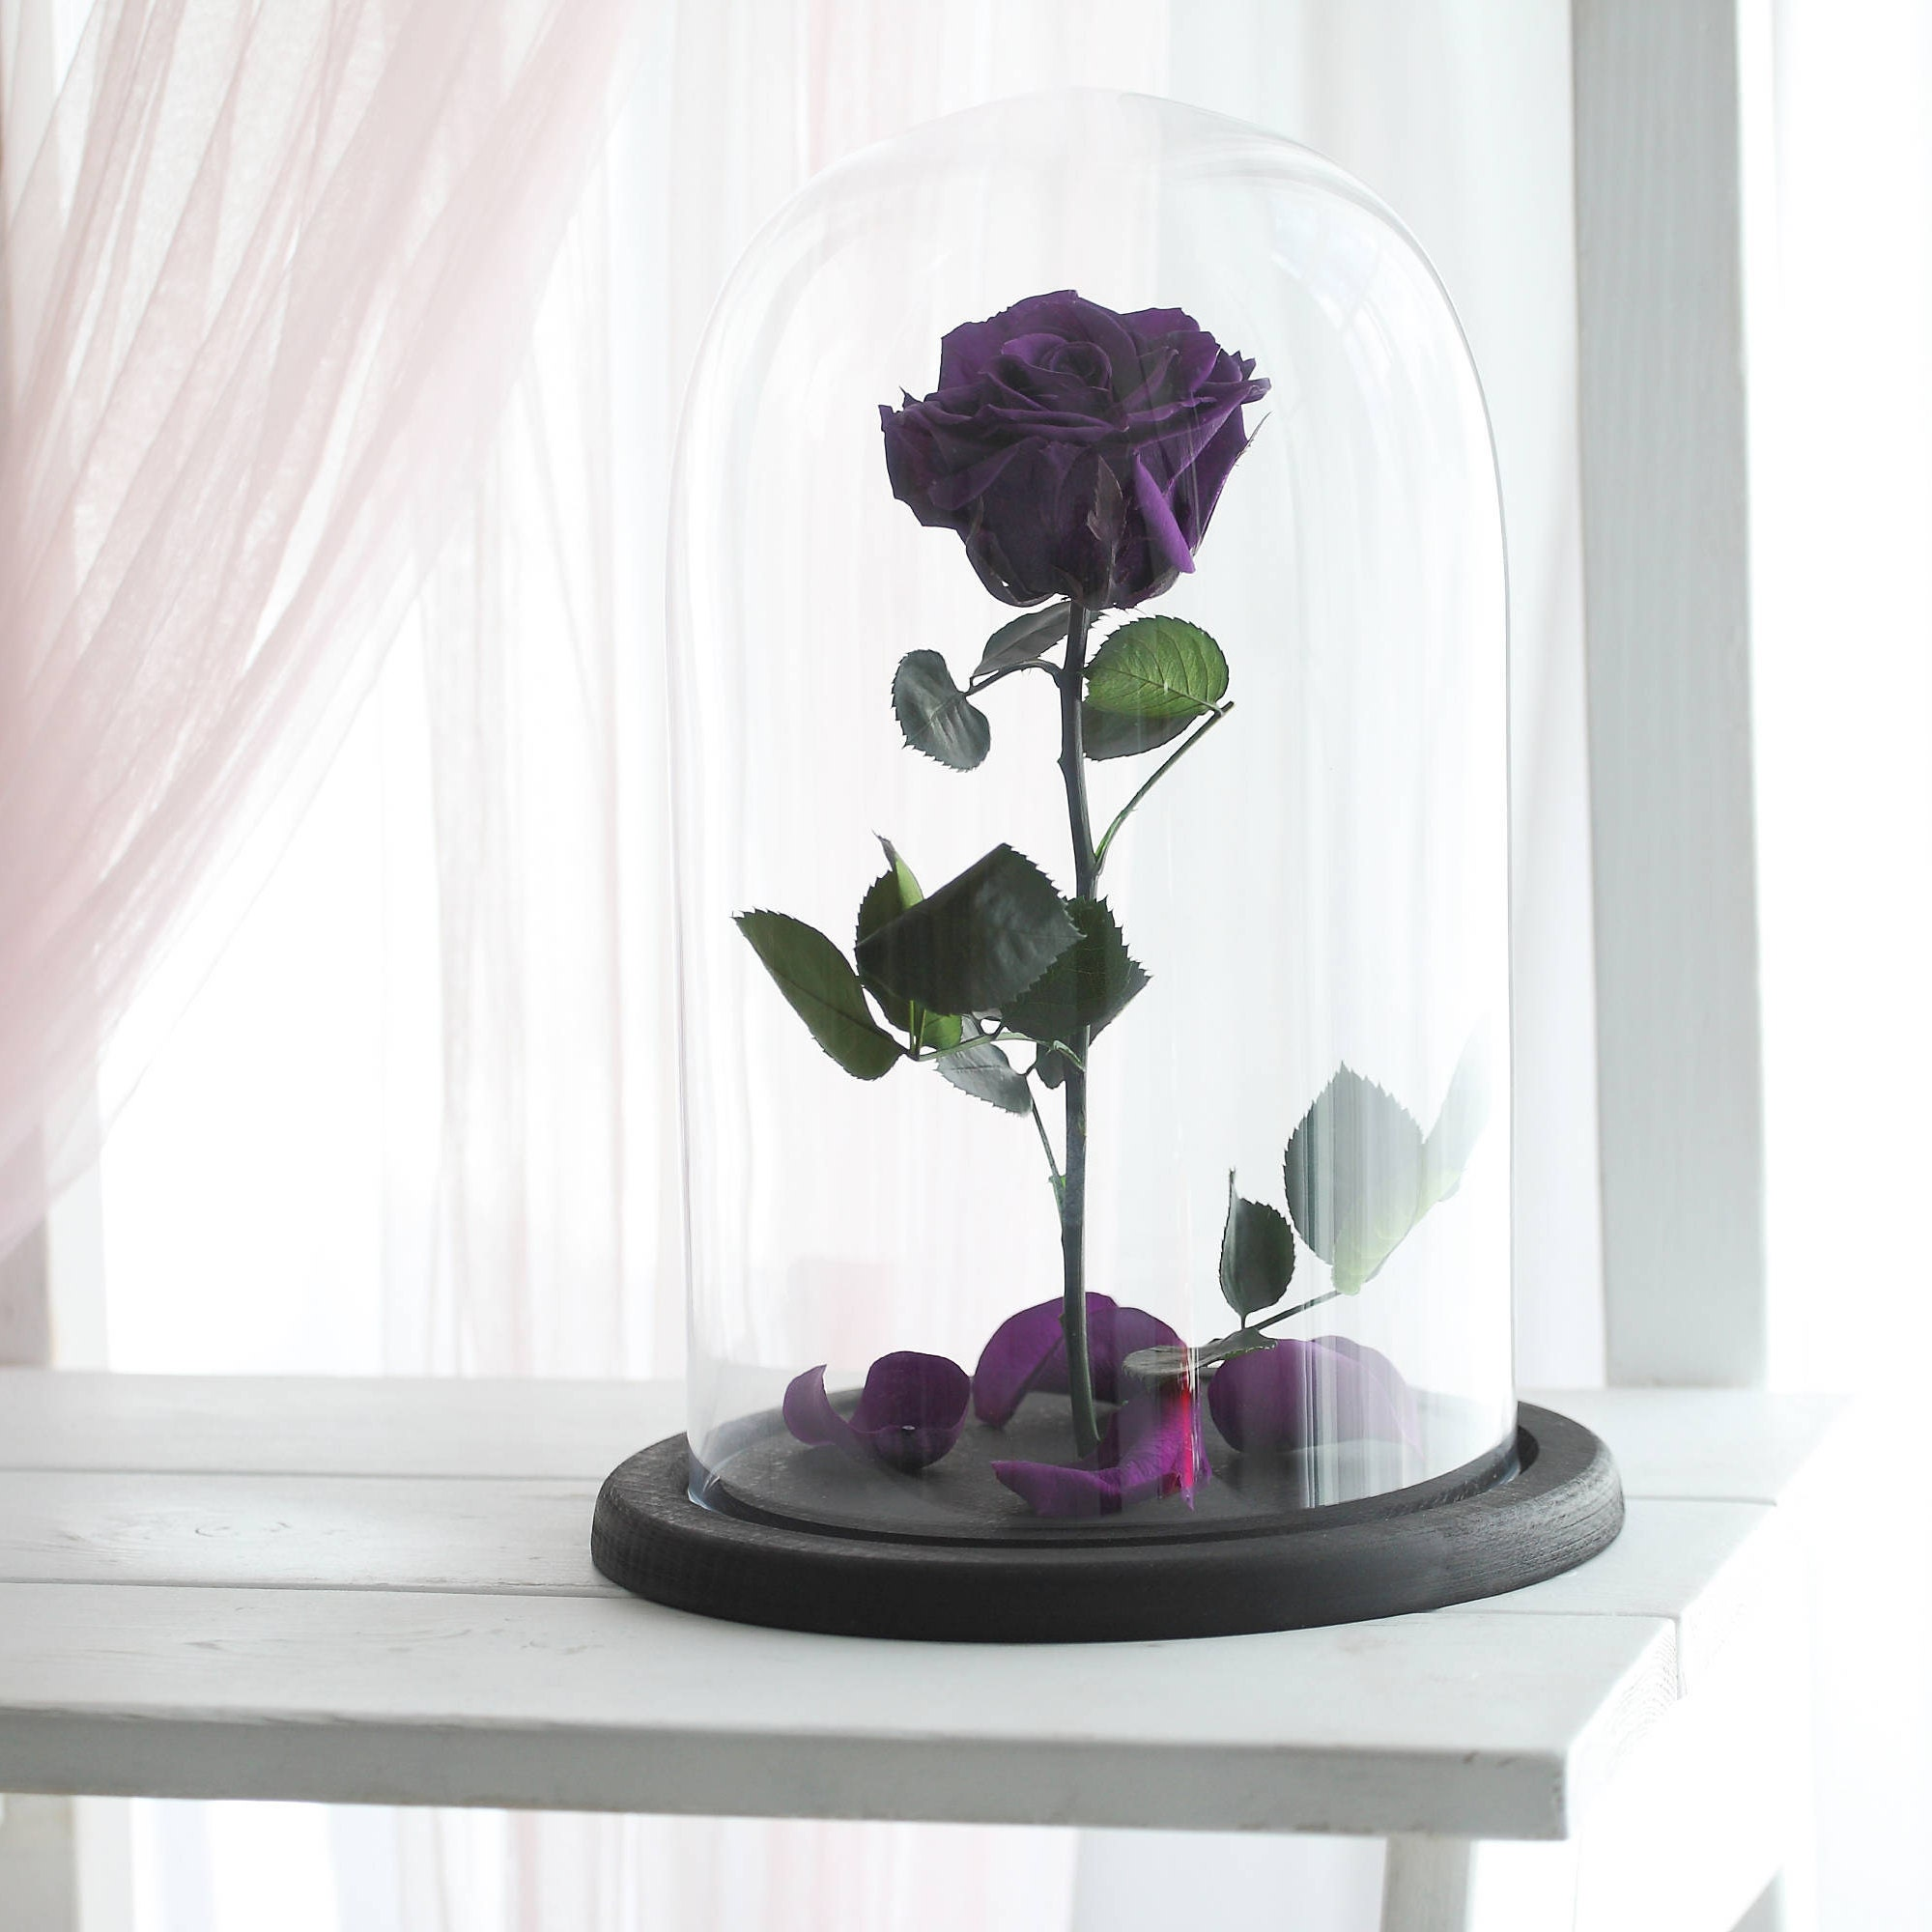 Beauty and the beast rose Large Belle Rose forever purple